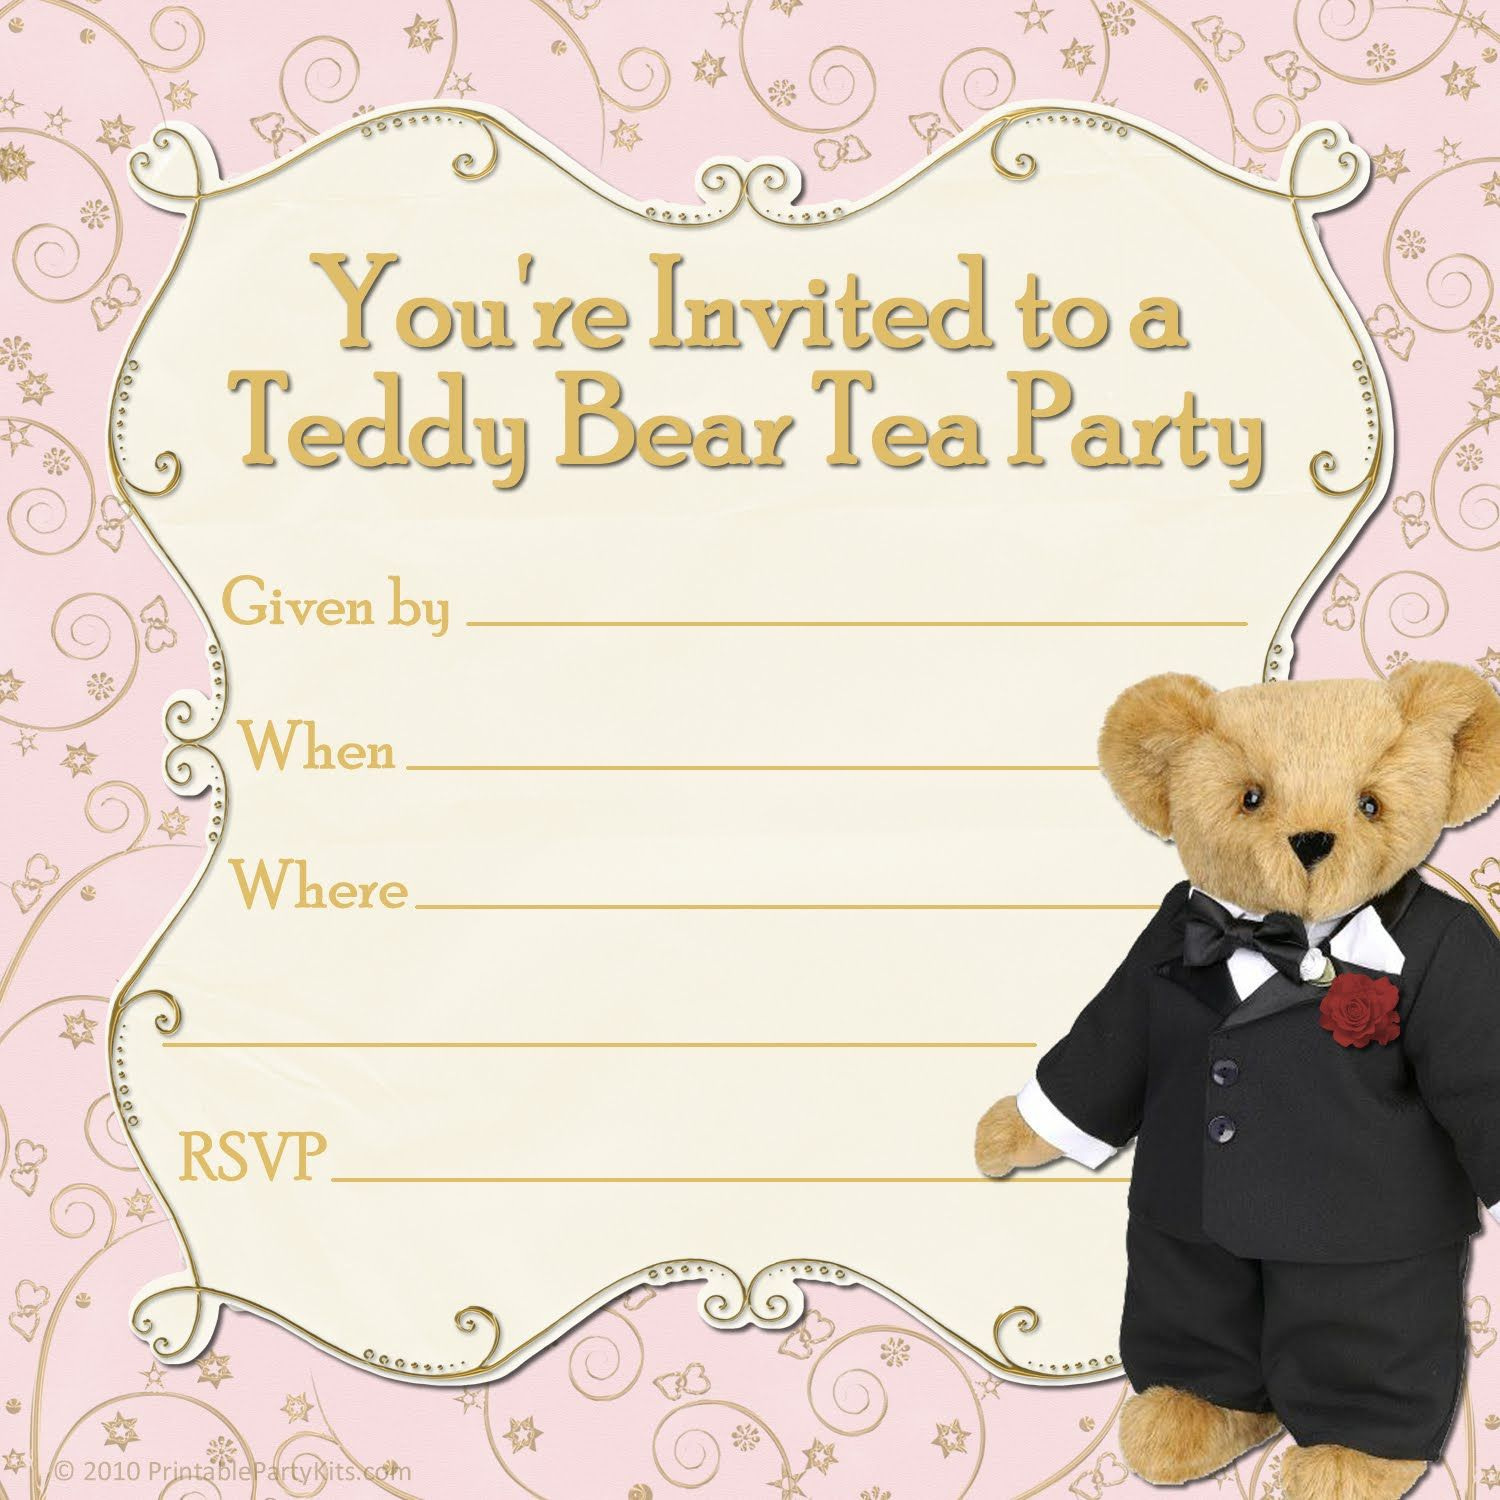 Teddy Bear Party Invitations Templates Free  Free Printable Party